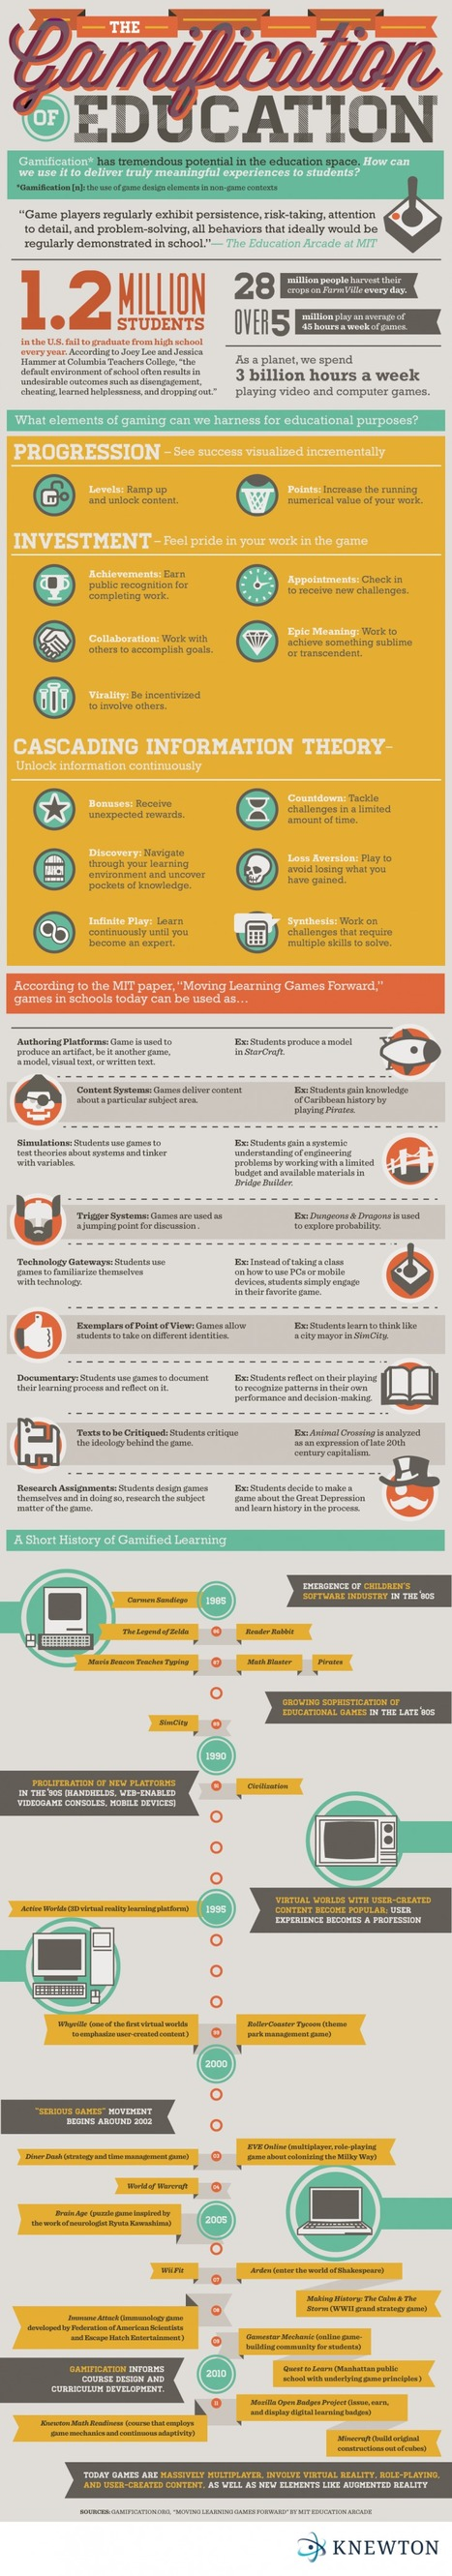 Guide To Gamification In Education [Infographic] | Social e-learning network | Scoop.it